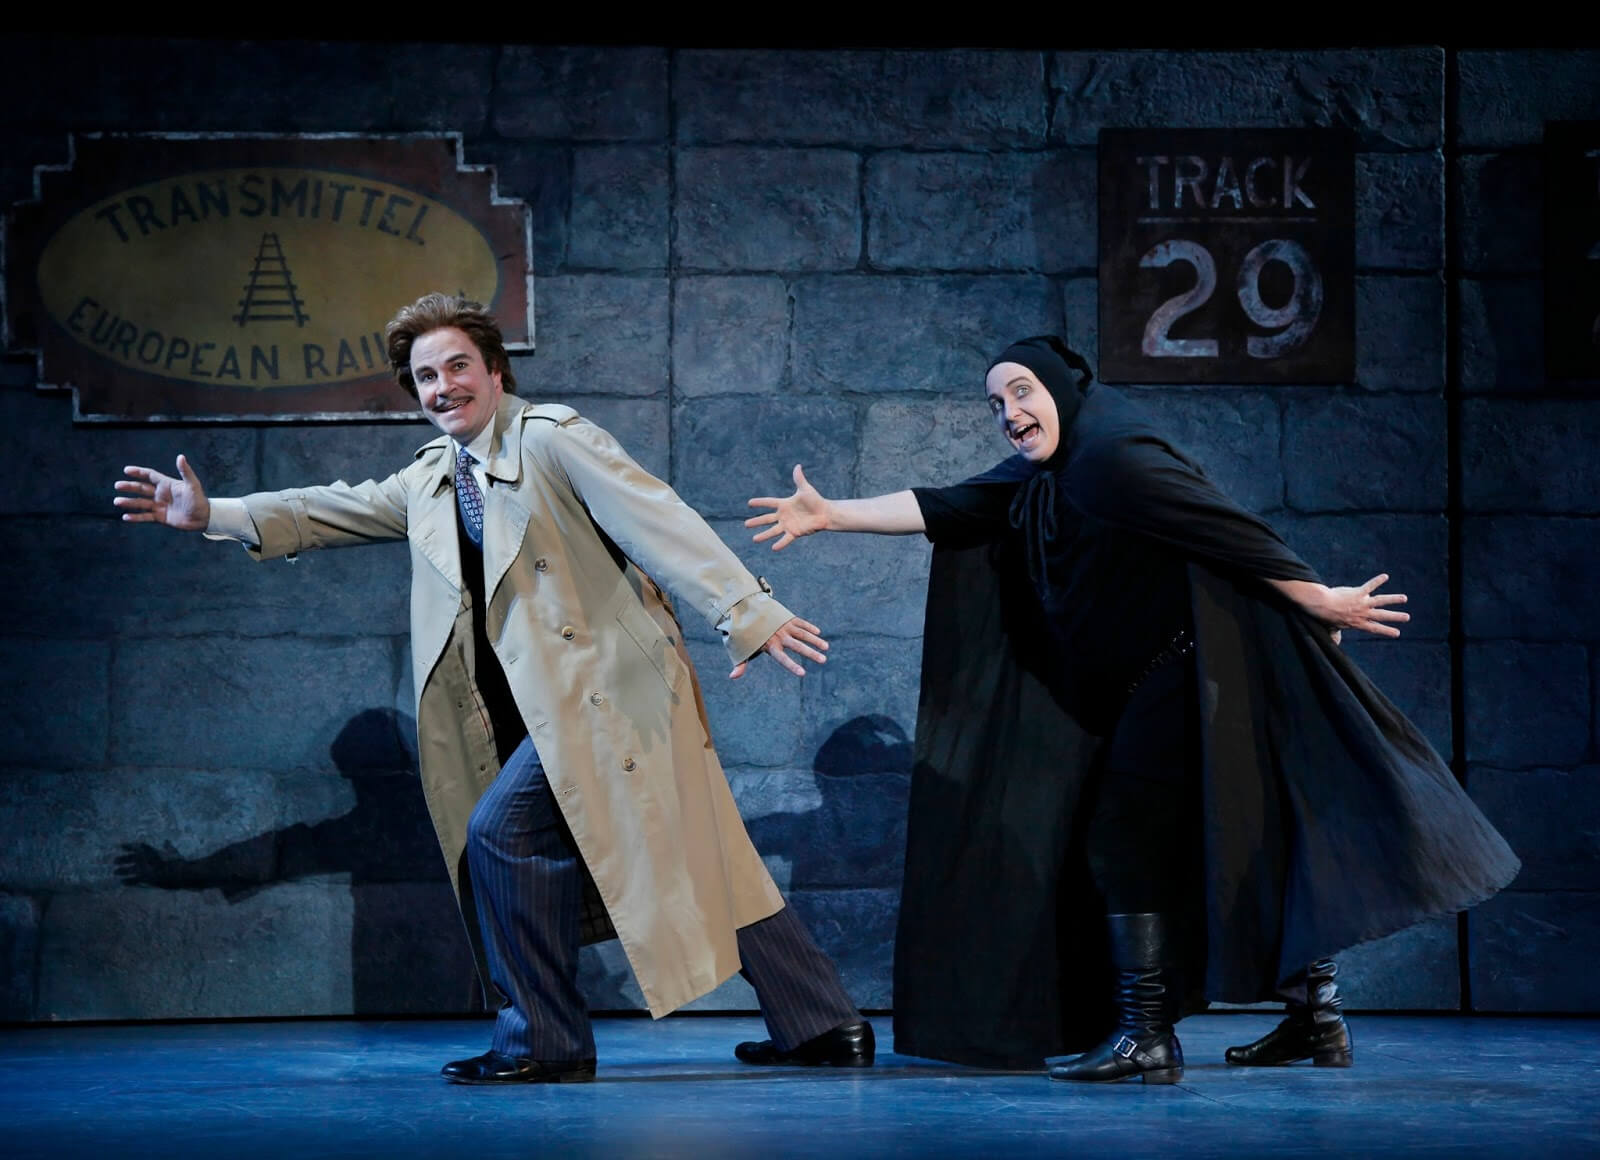 """Dr. Frankenstein (Roger Bart) dances with Igor (Cory English) to the song """"Together Again"""". They are at the Transylvania Train Station."""